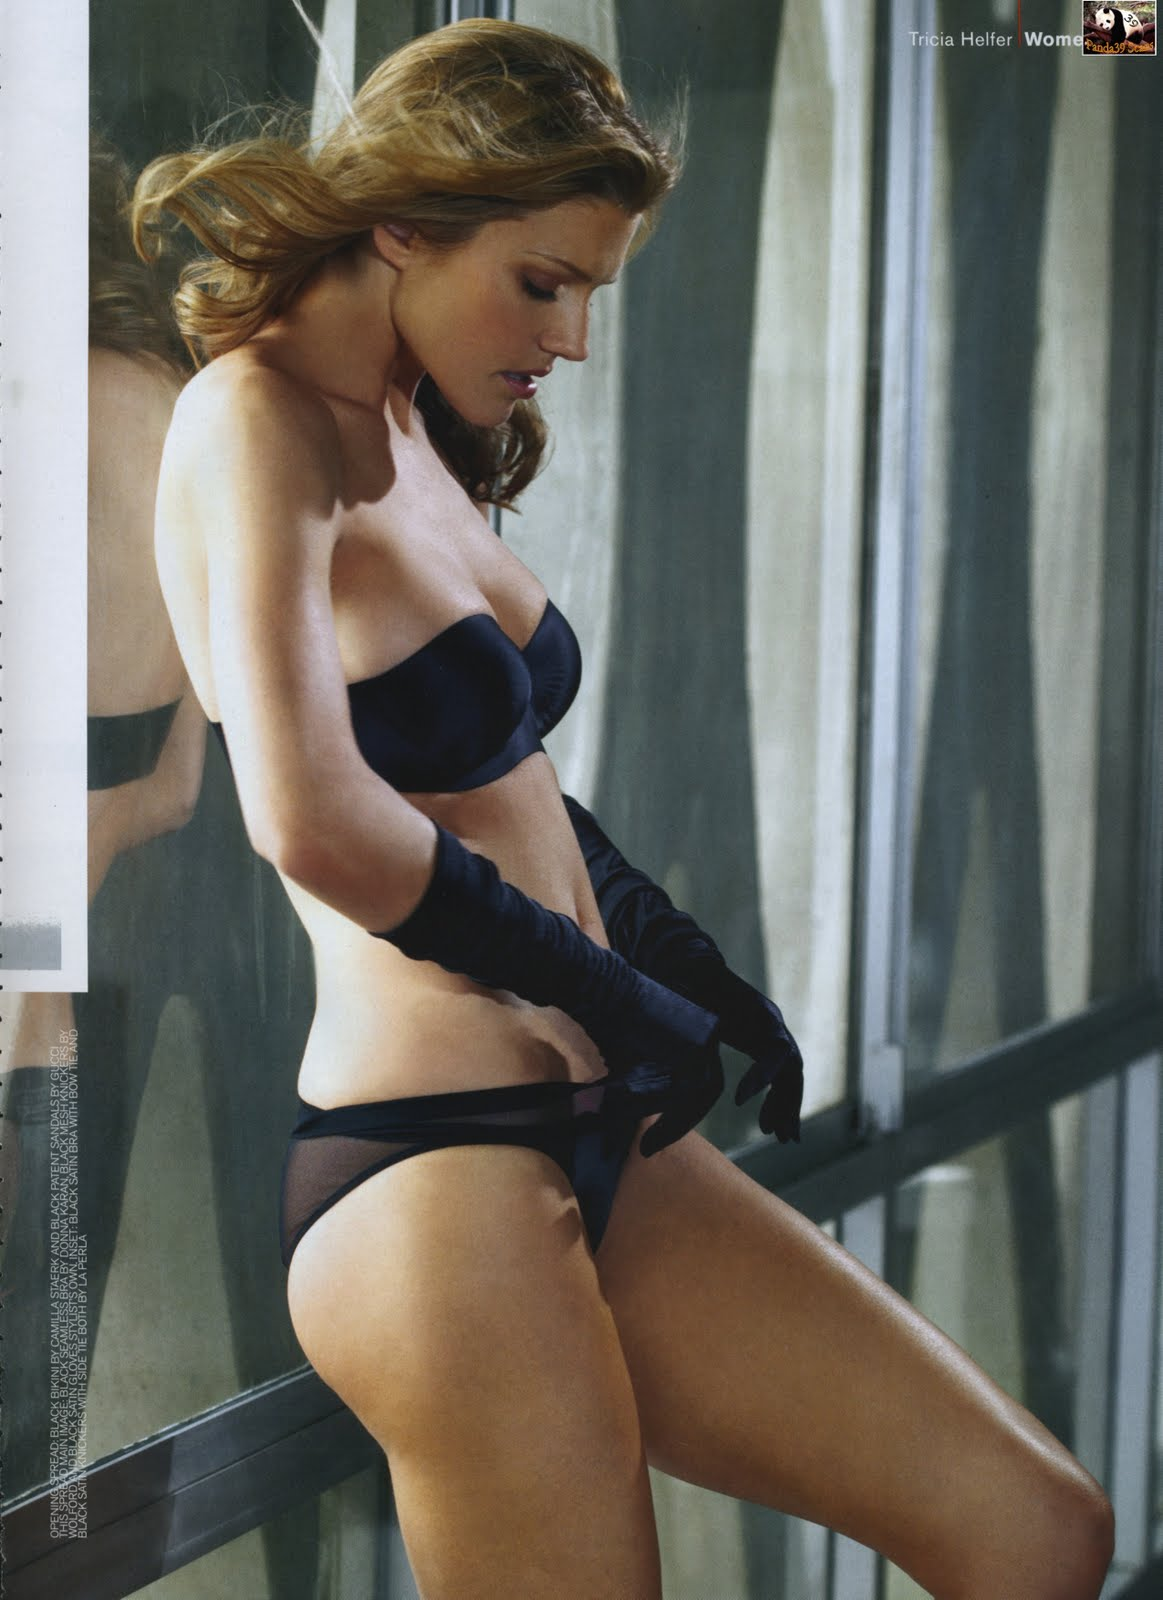 Angie Everhart Hot Sex out standing wallpapers: angie everhart hot hd wallpapers